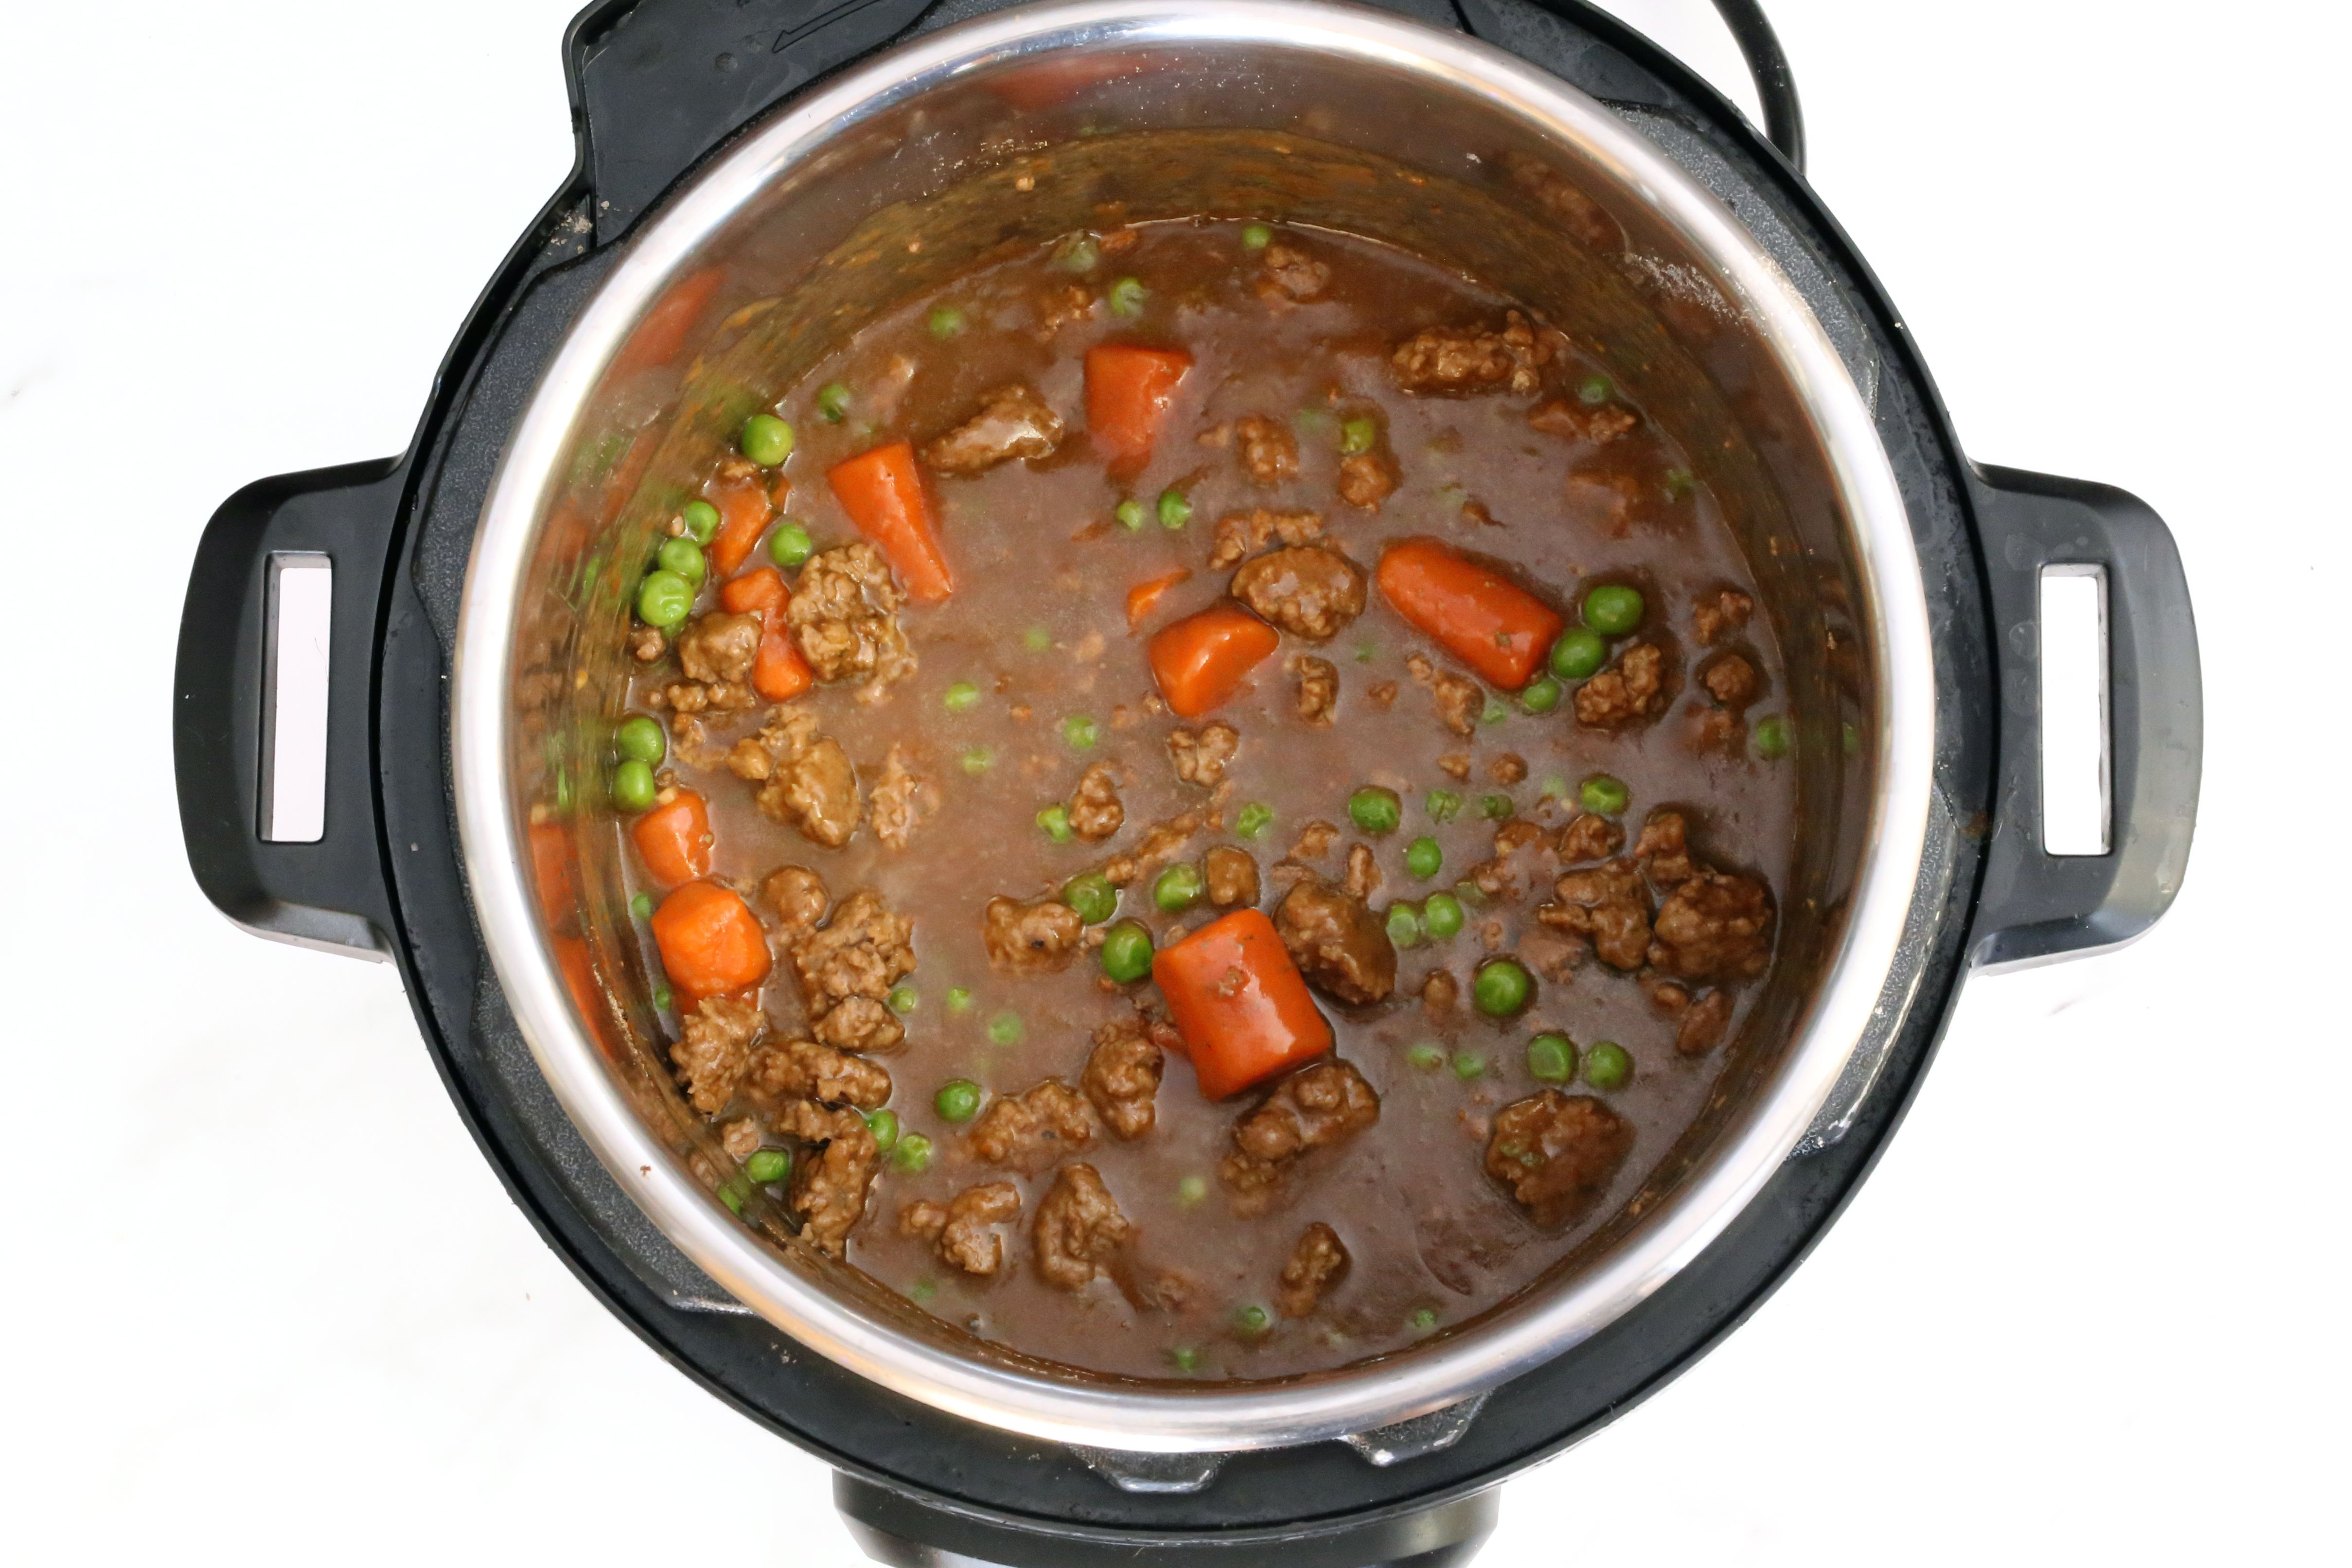 Add the gravy mix to the Instant Pot pressure cooker